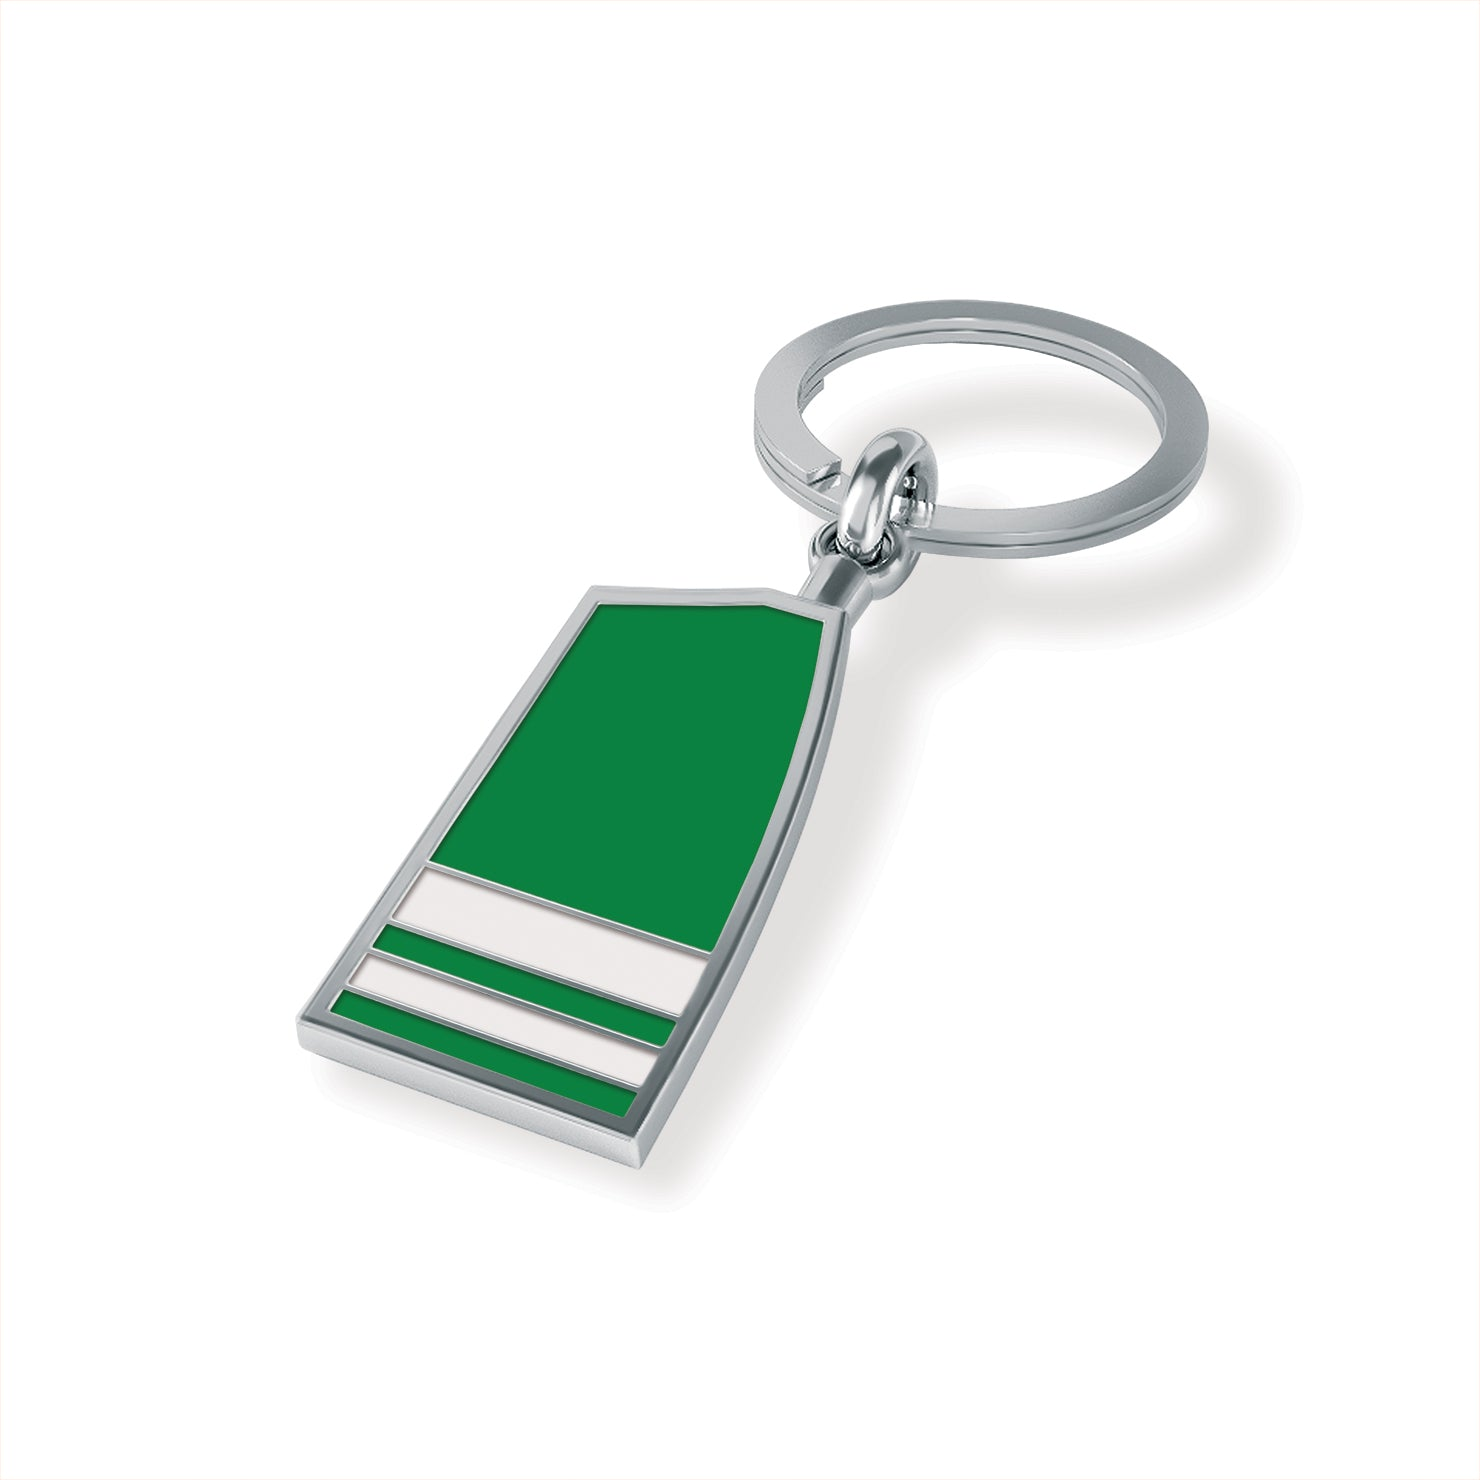 Rowing Custom Oar Key Chain - Melbourne HS Boys&Girls